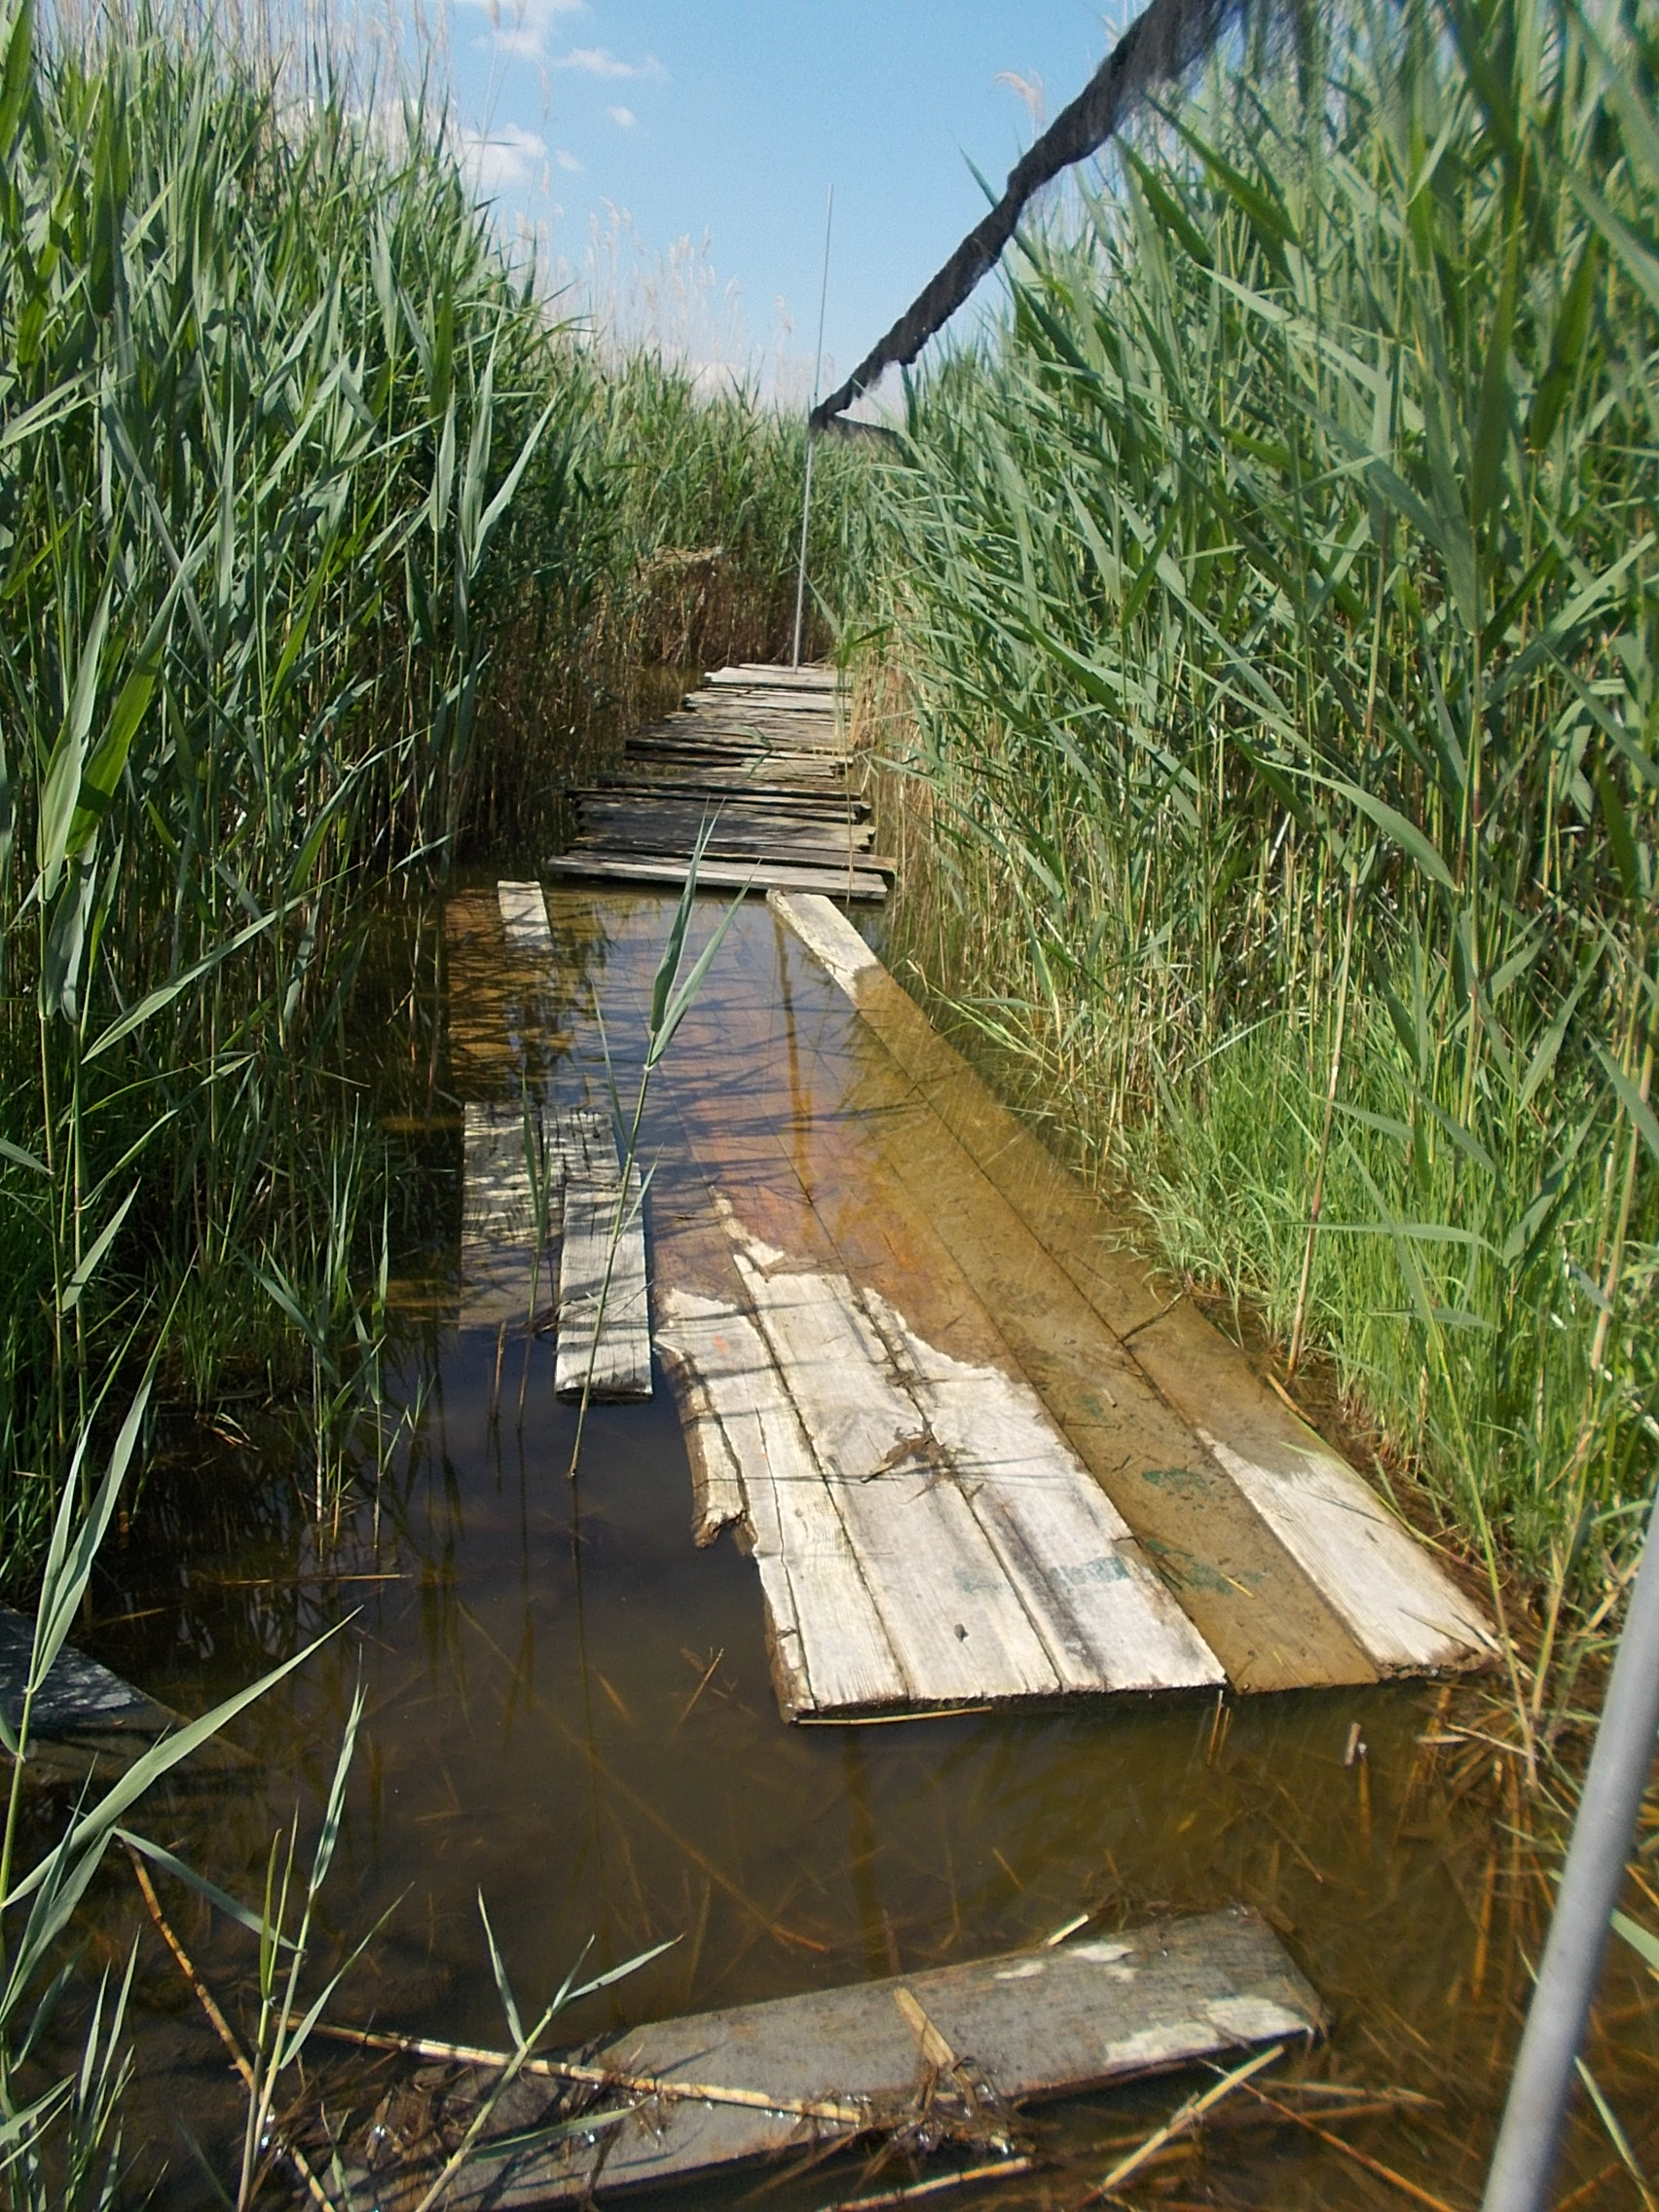 A nature trail of floating planks leading off into the distance between very tall reeds